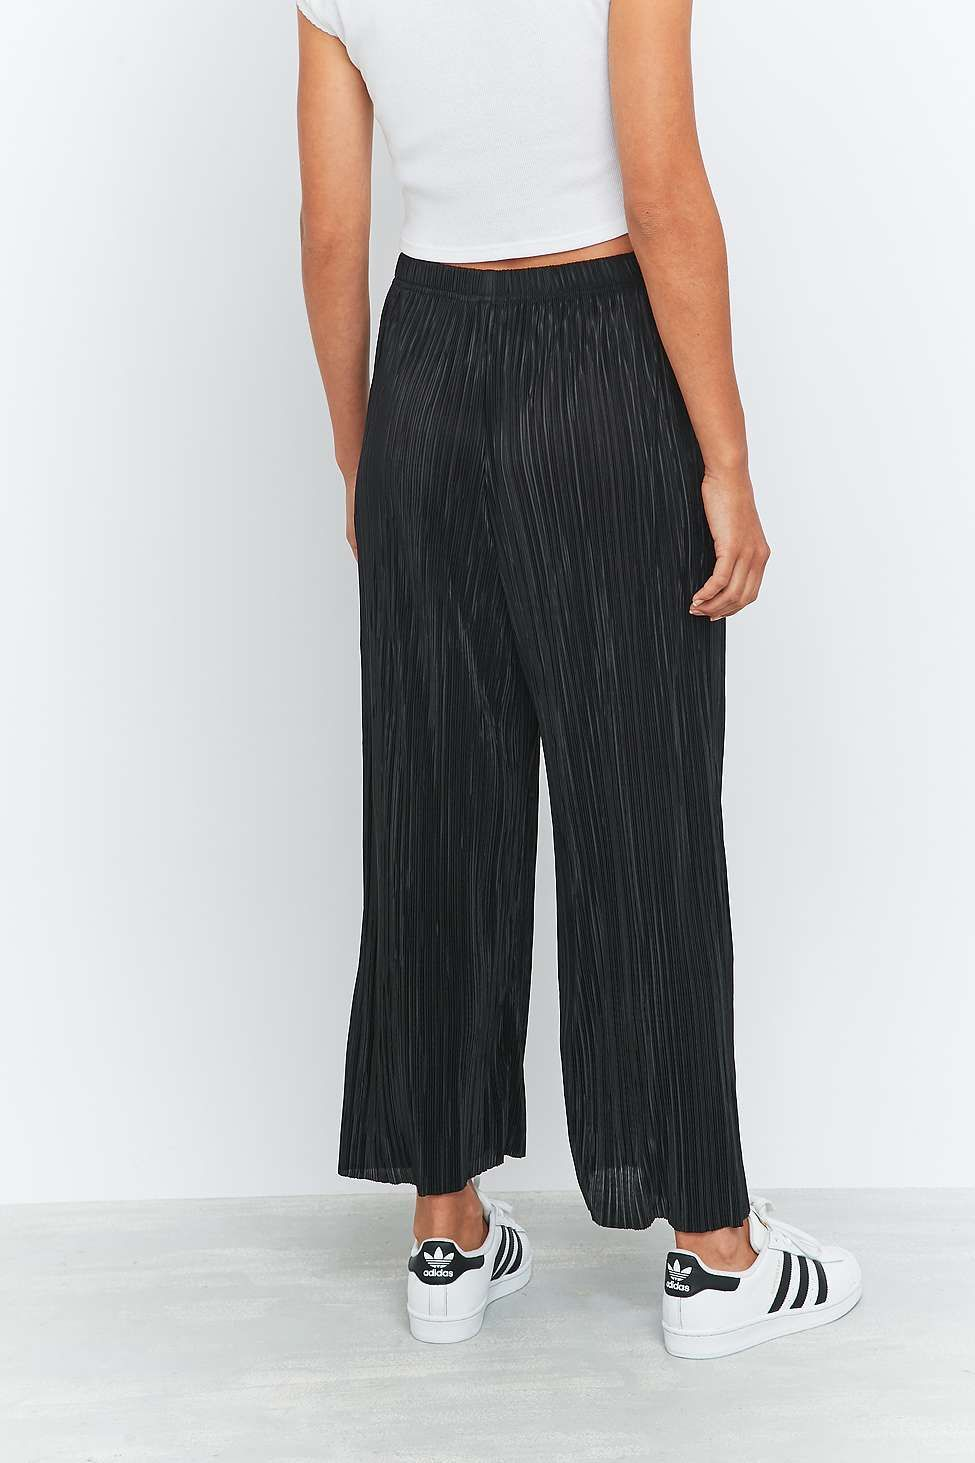 863735ada0 Light Before Dark Pleated Black Wide-Leg Trousers | Pants | Black ...